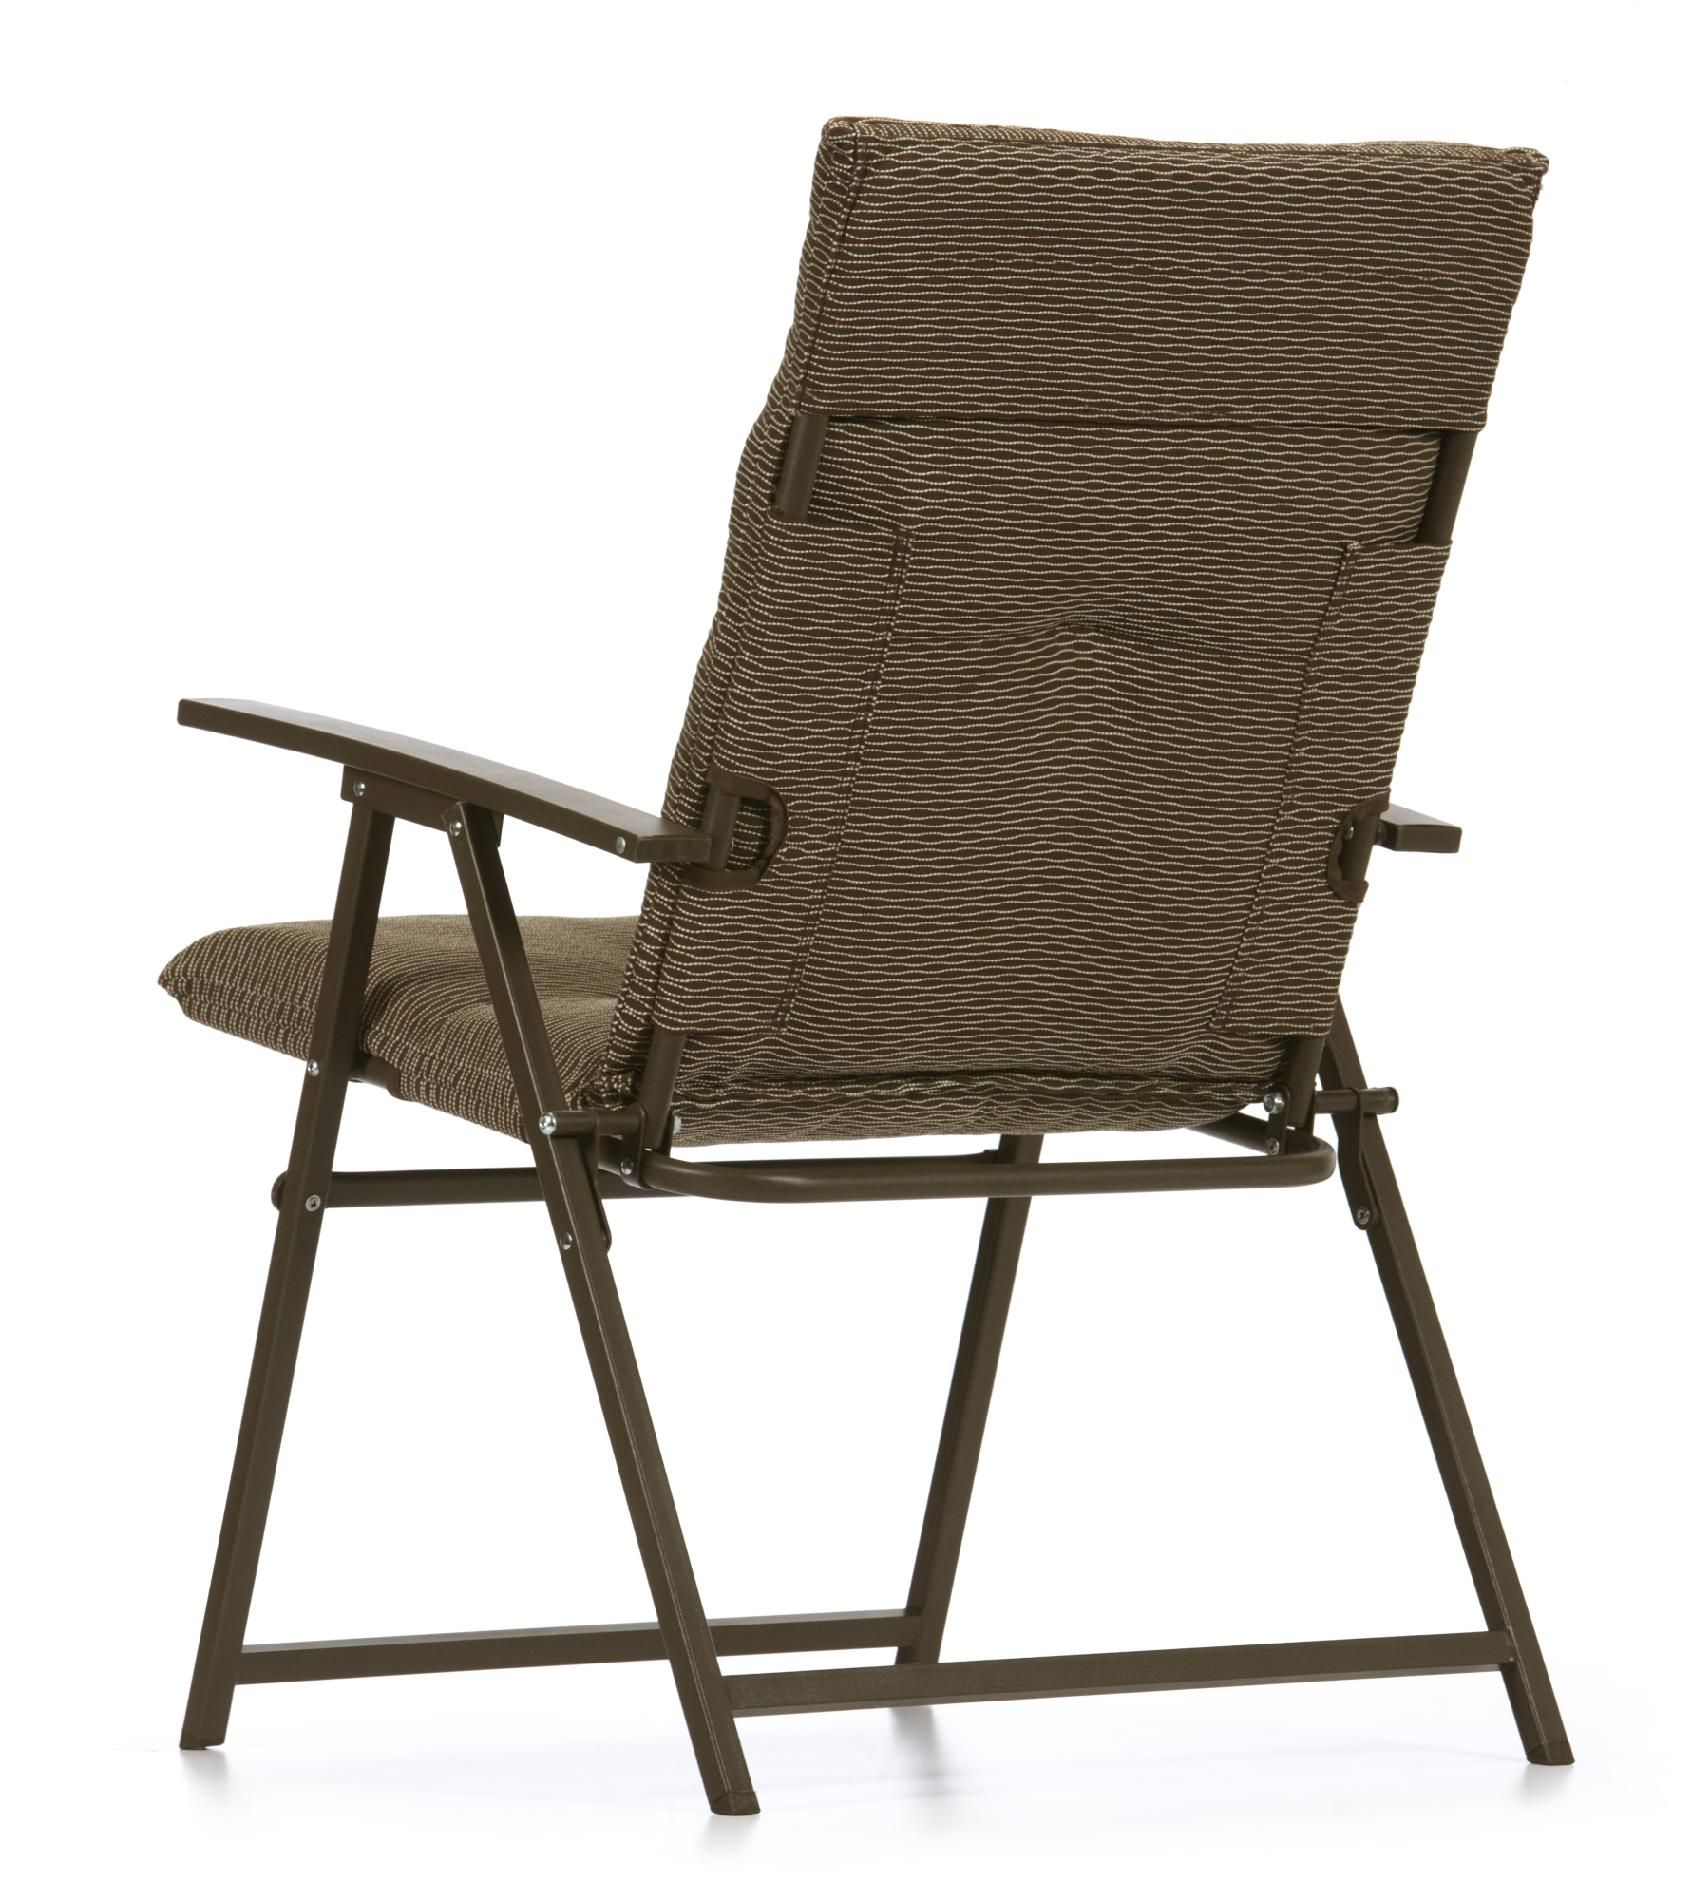 Outdoor Folding Chairs Brief Overview About The Folding Patio Chairs